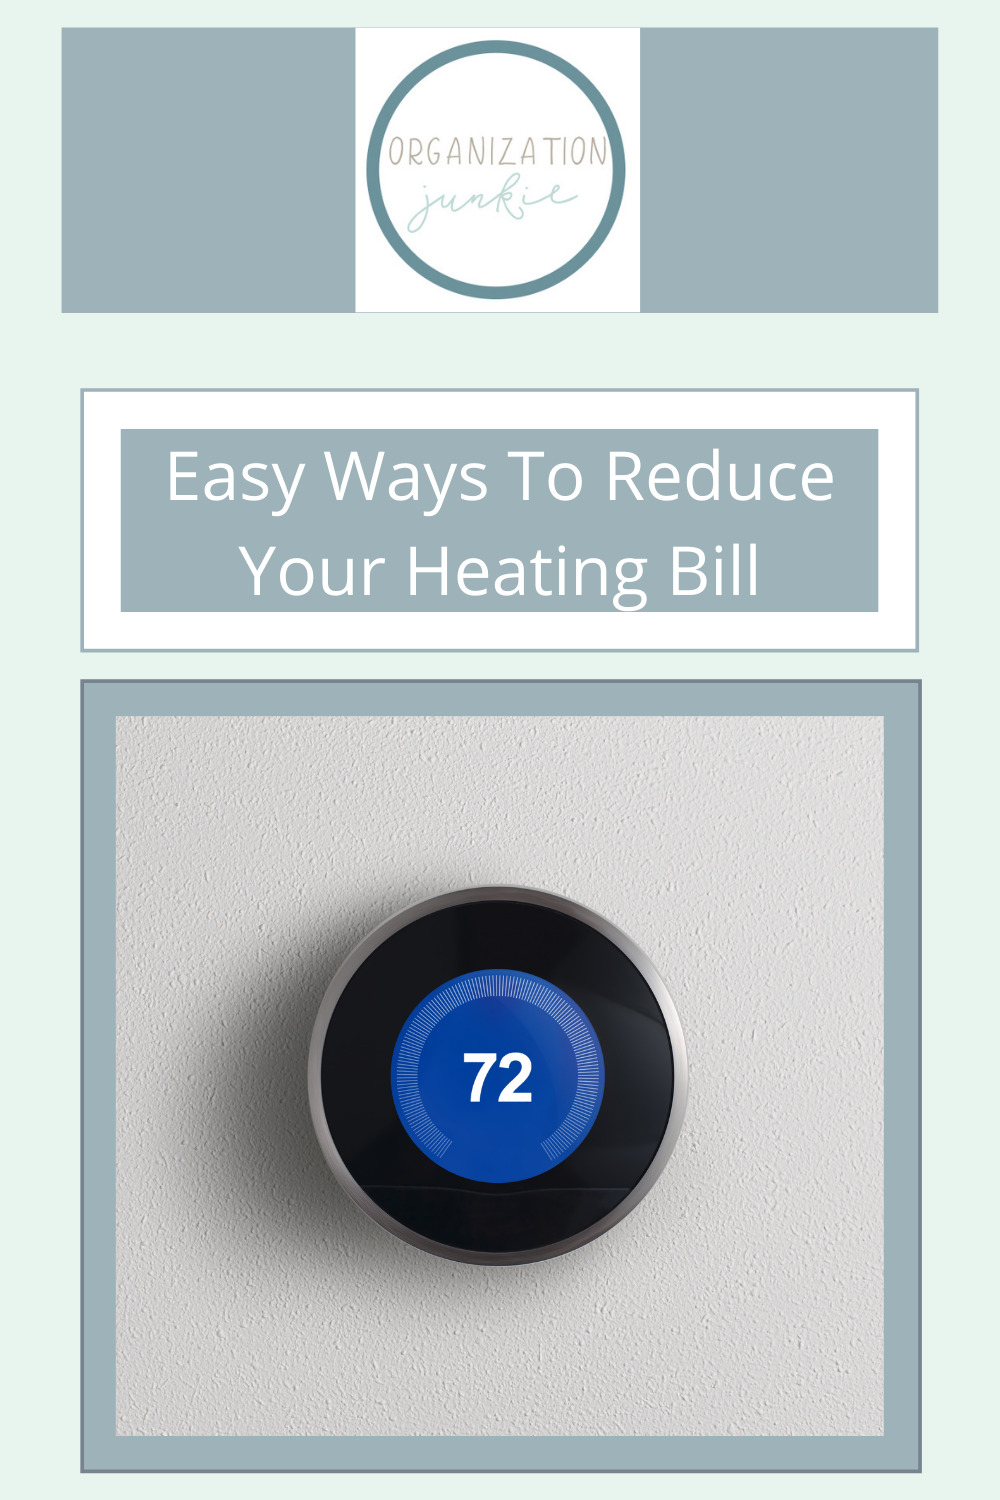 Organizationjunkie.com will make life around the house less stressful with loads of organization and home living tips. This winter, stop wasting so much money on heating. Find out how you can cut your costs in half now!